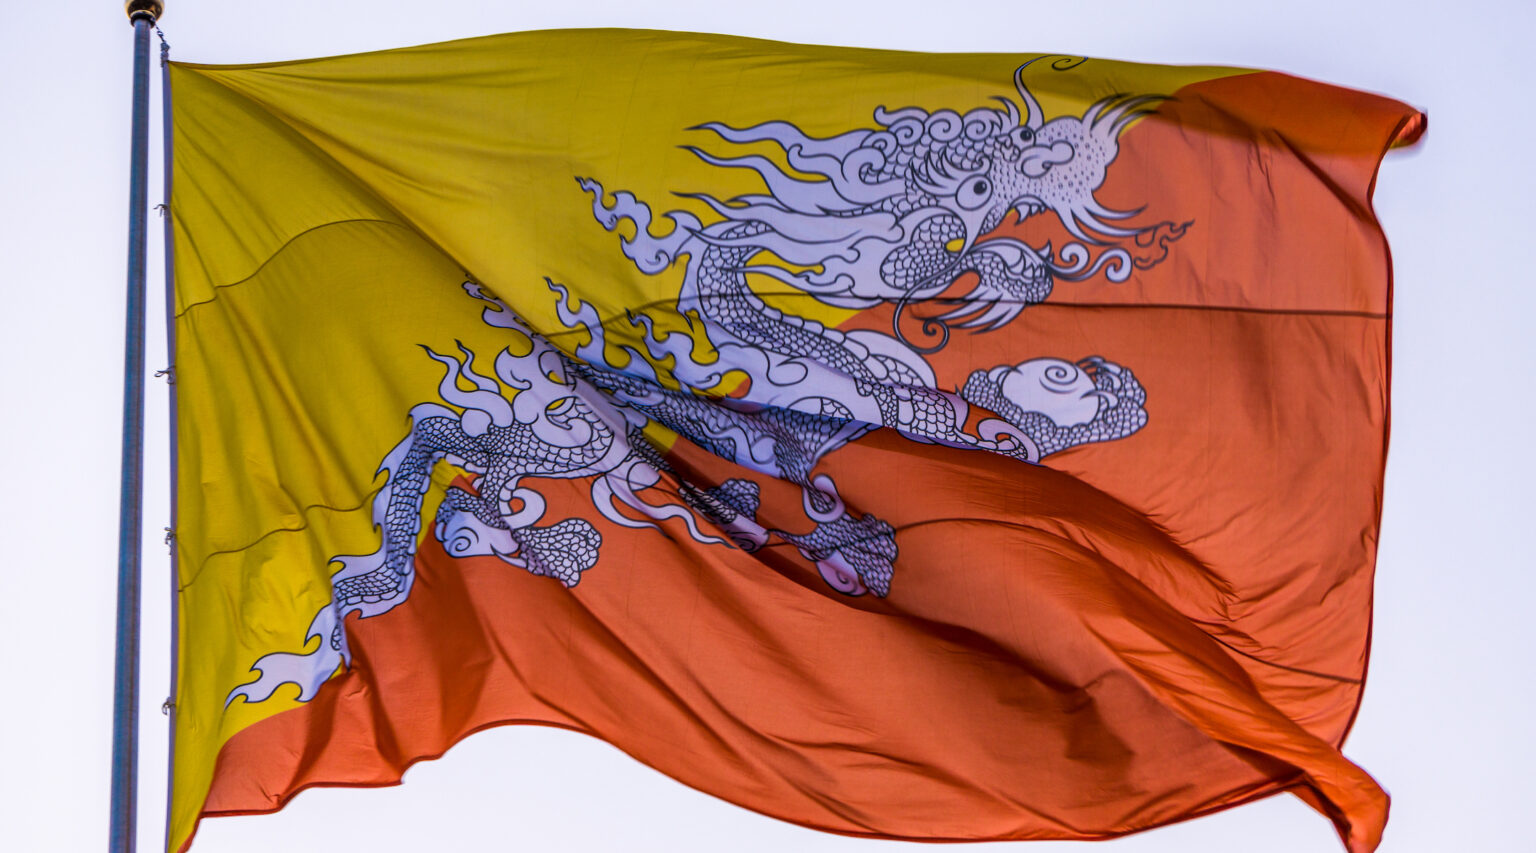 The flag of the Kingdom of Bhutan. (Photo/Wikimedia Commons-Caleb See)